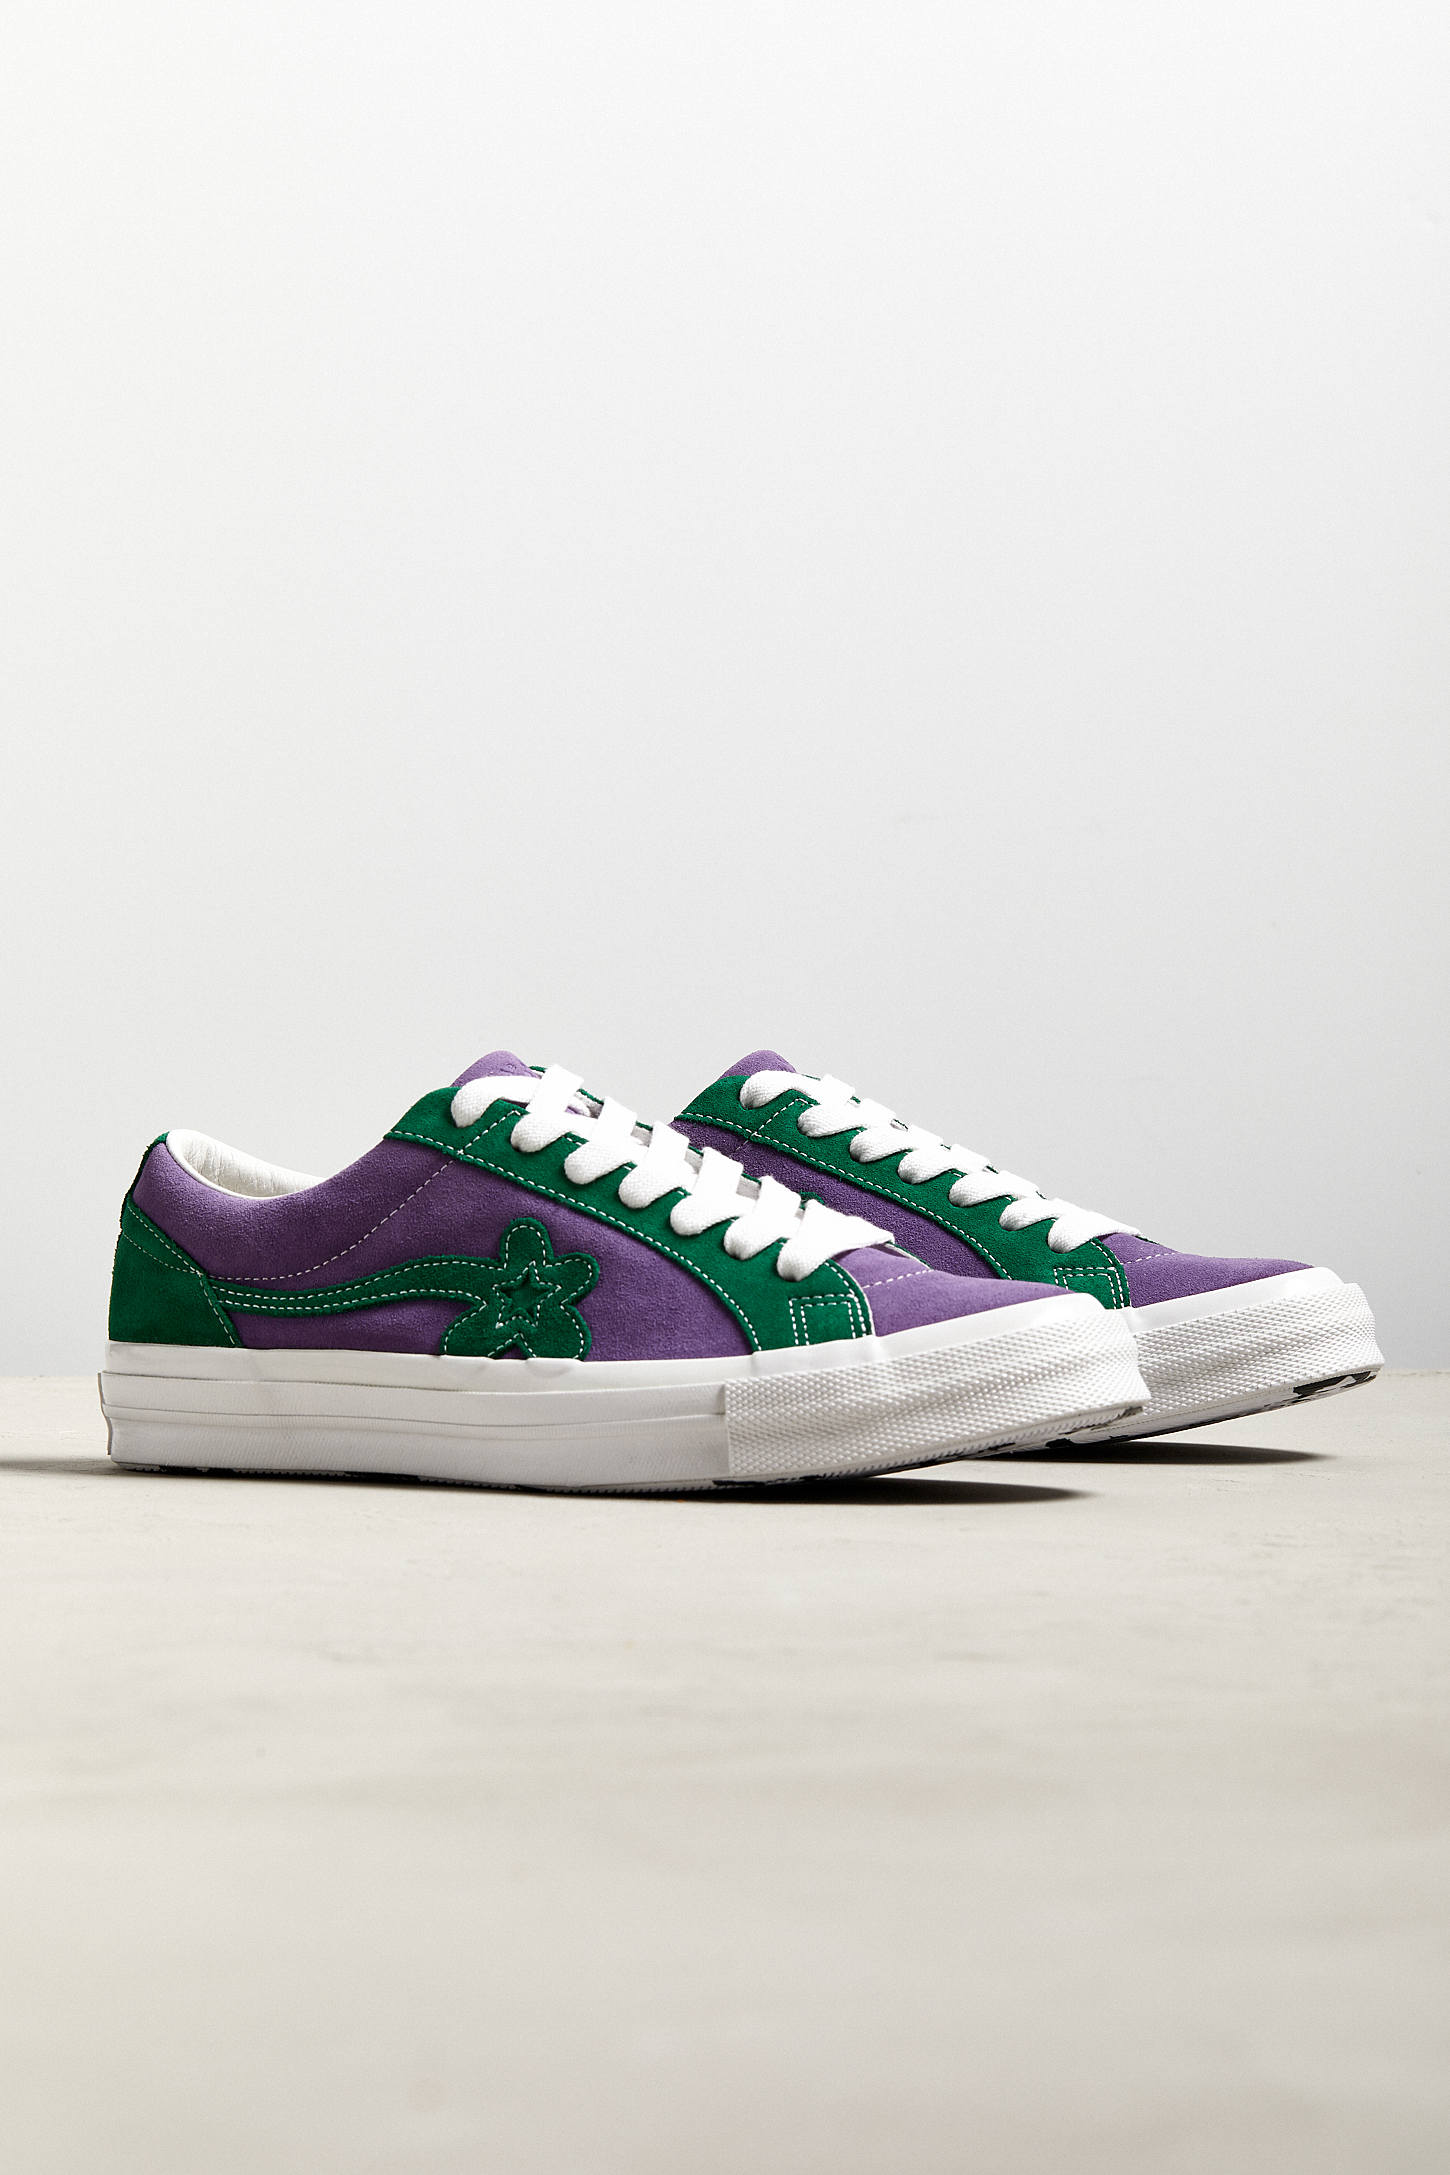 Converse X Golf Le Fleur One Star Sneaker Urban Outfitters